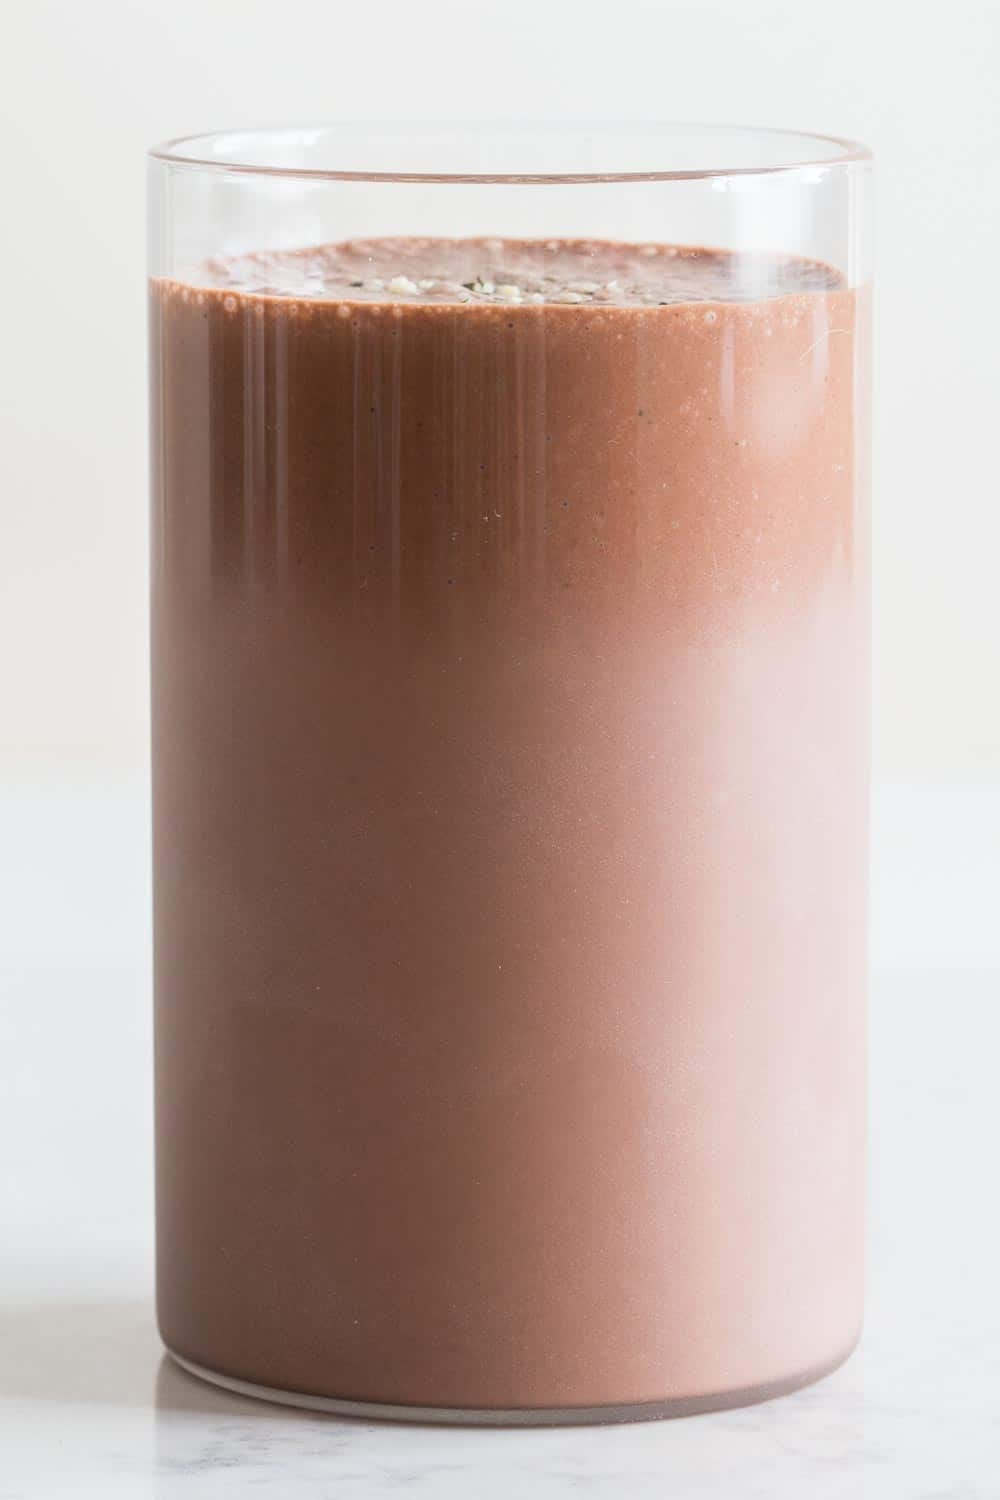 A glass full of vegan Chocolate Peanut Butter Banana Smoothie.